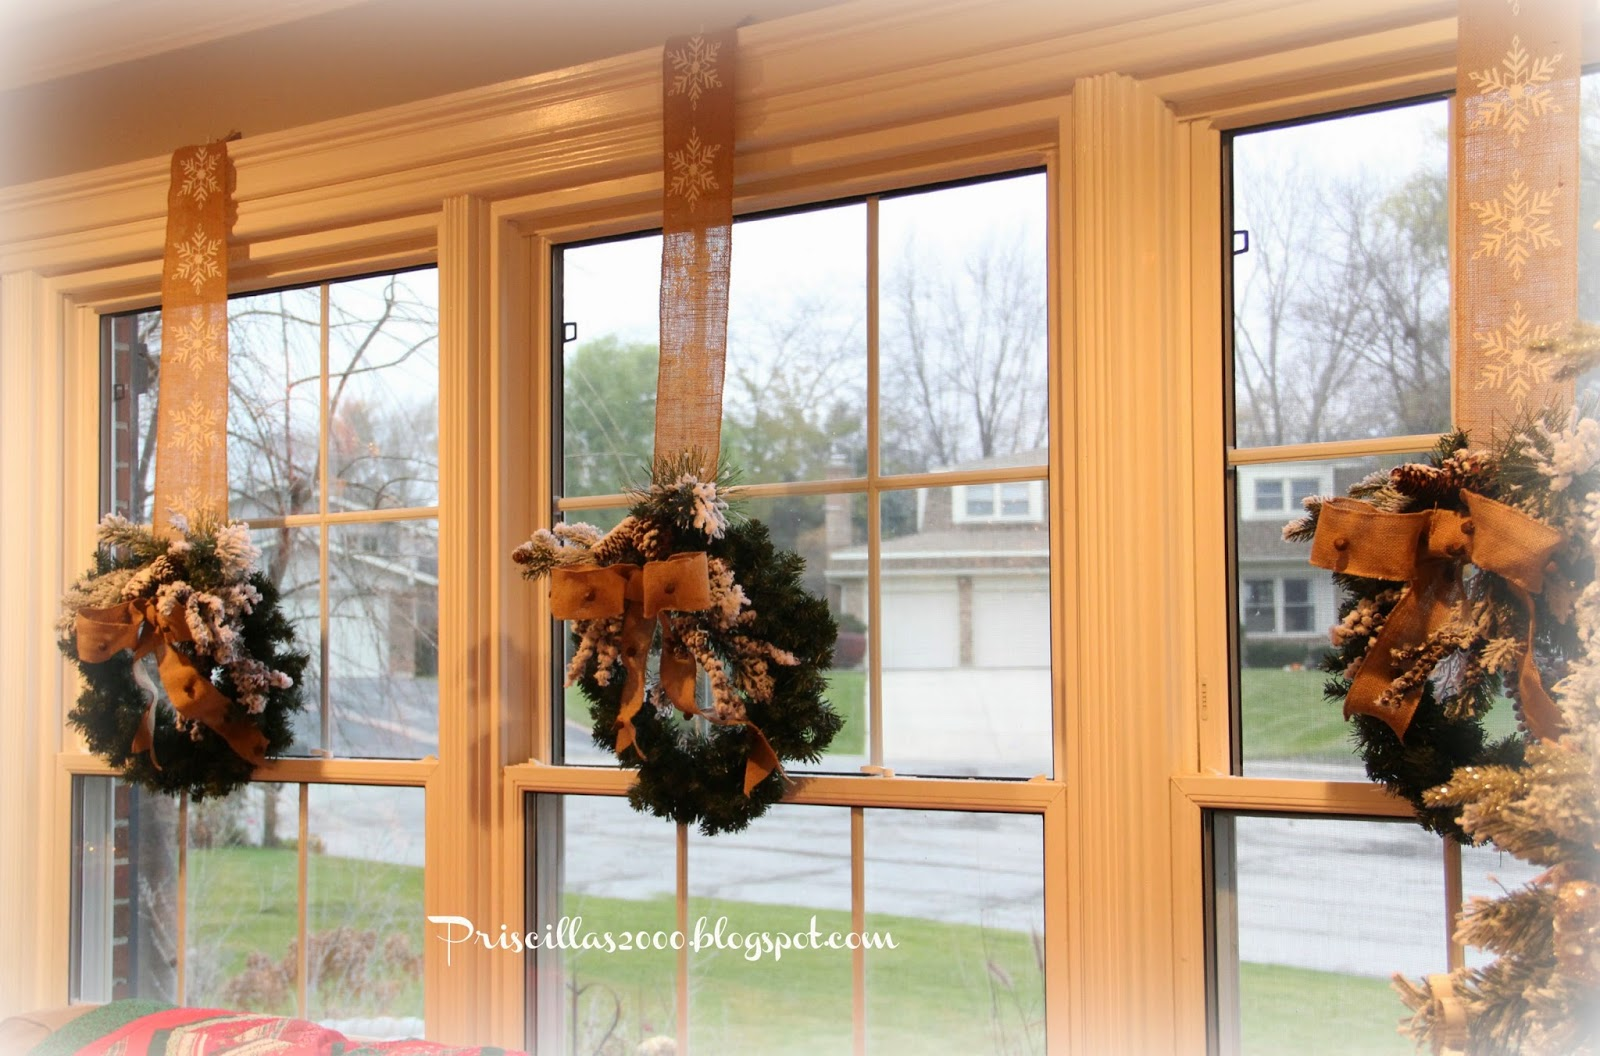 Priscillas: Flocked Wreaths in The Living Room